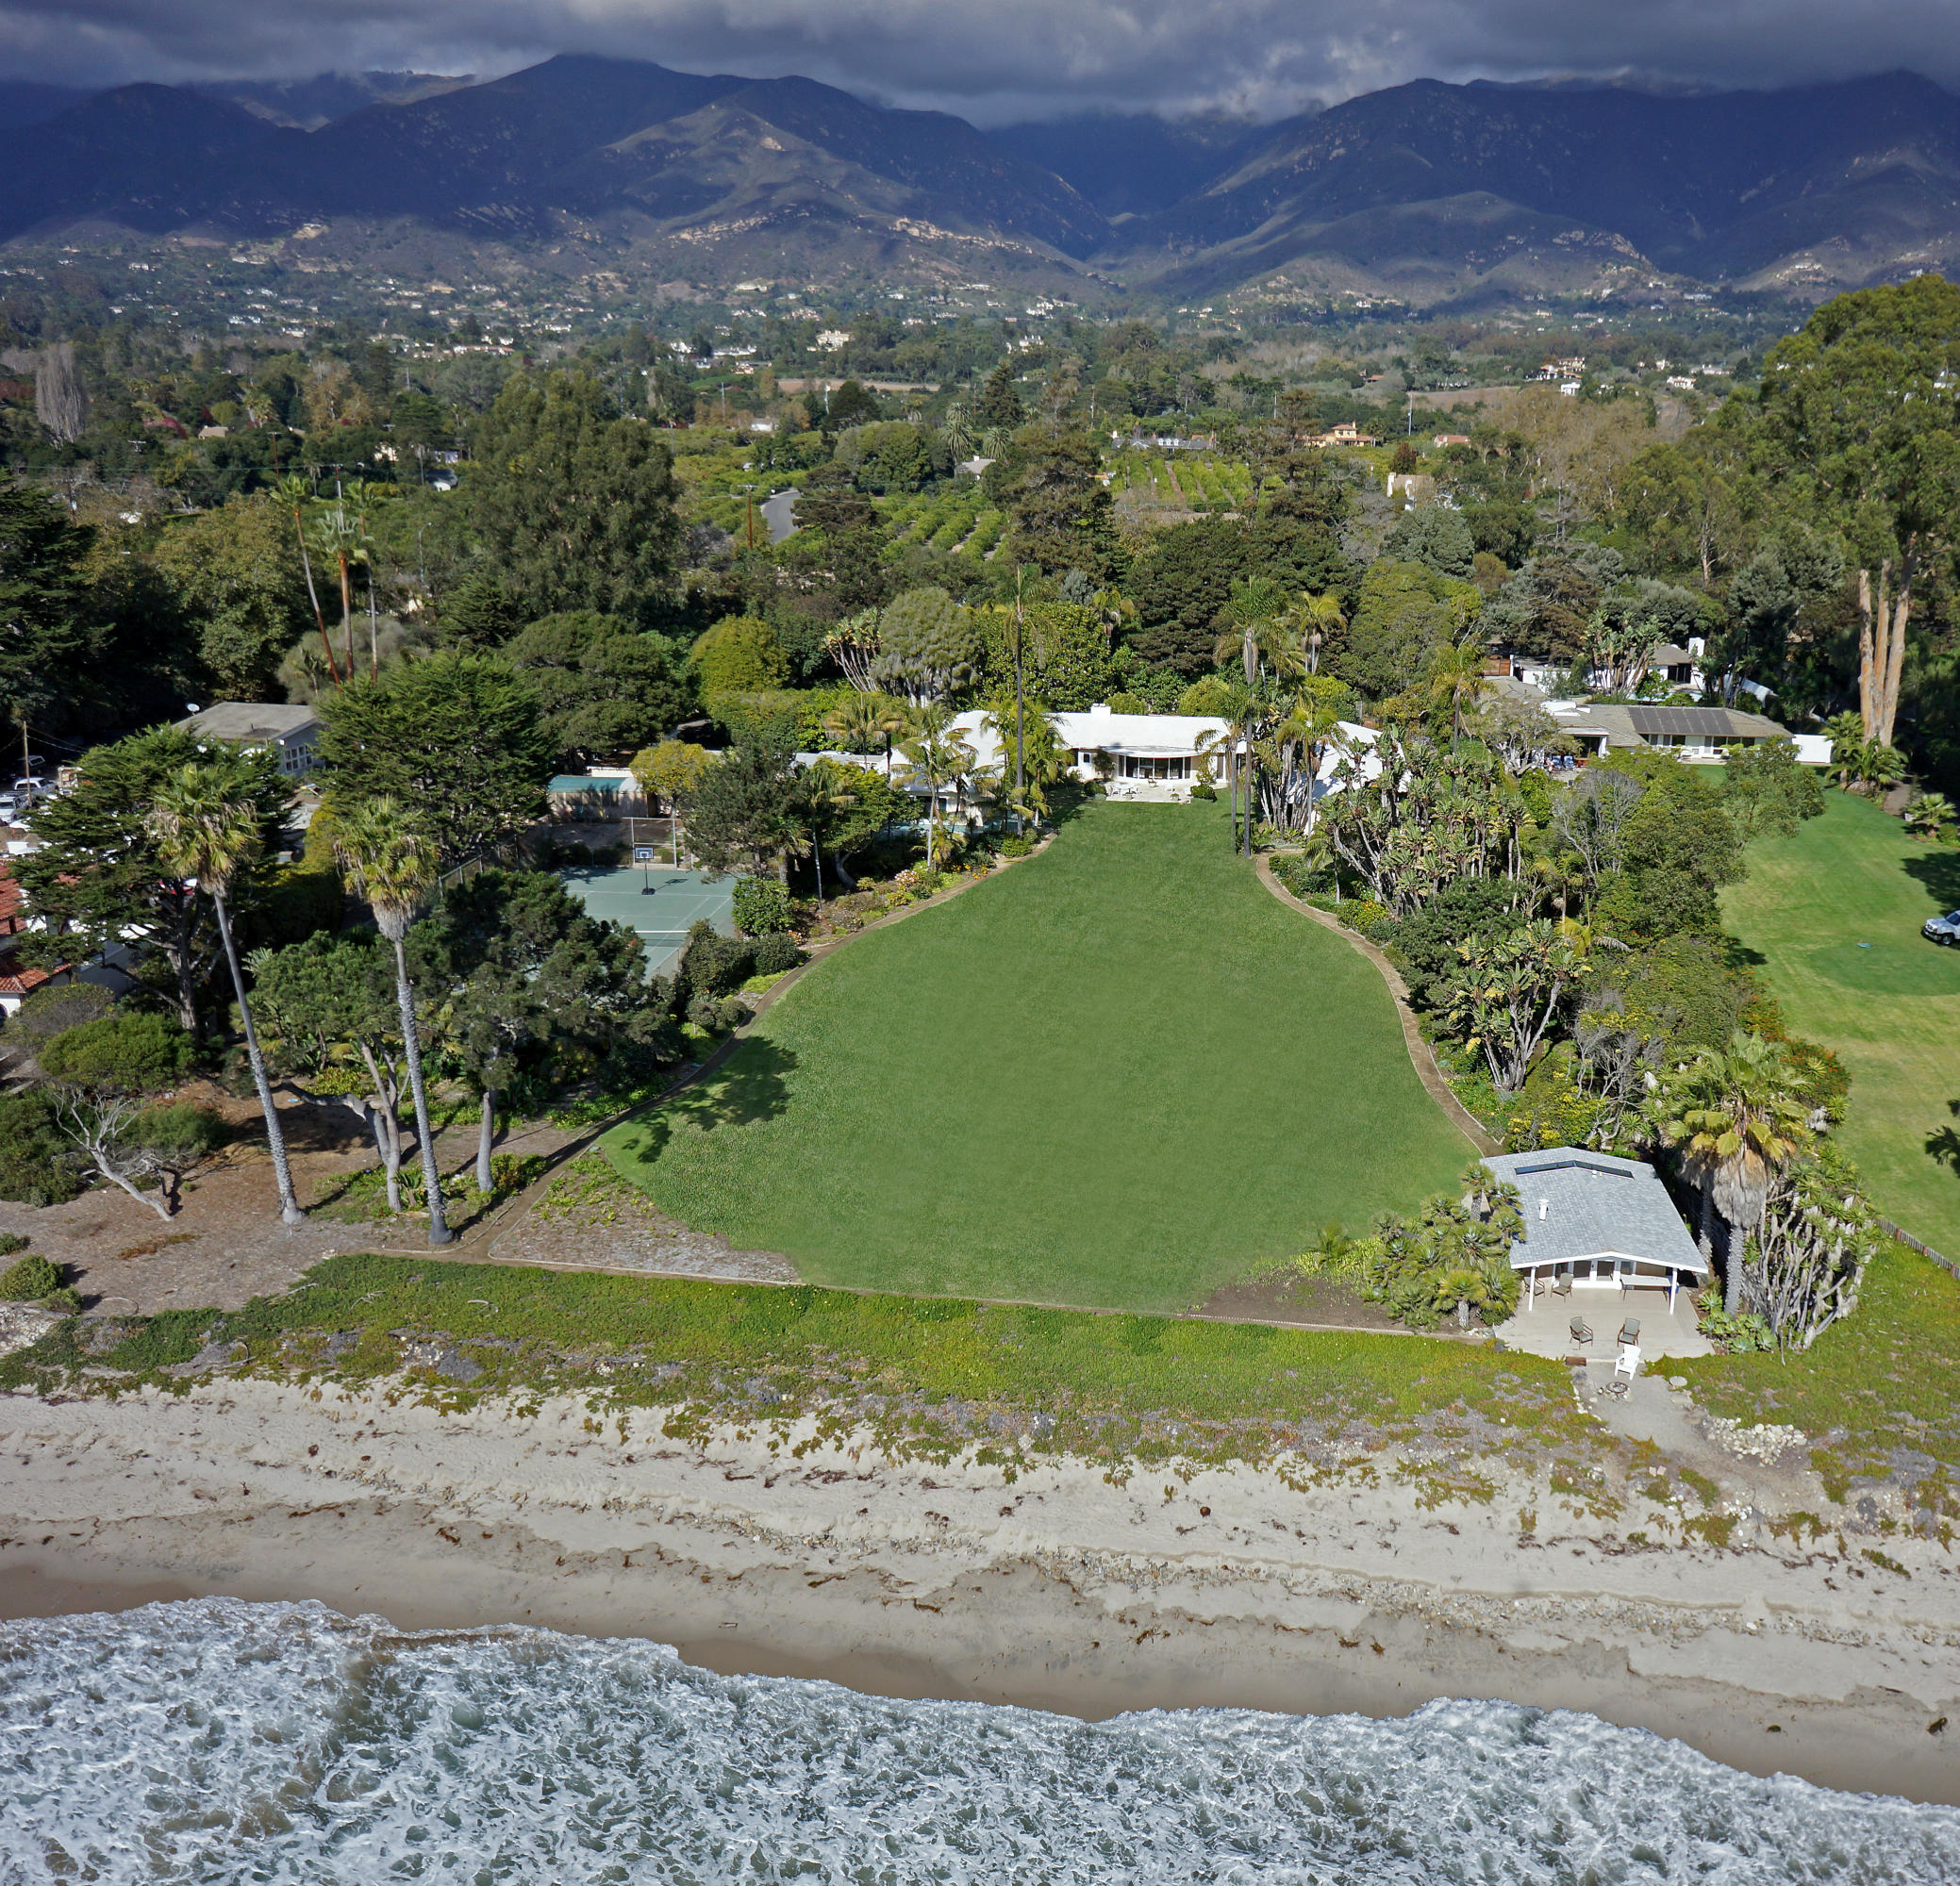 Property photo for 1685 Fernald Point Ln Santa Barbara, California 93108 - 13-3631